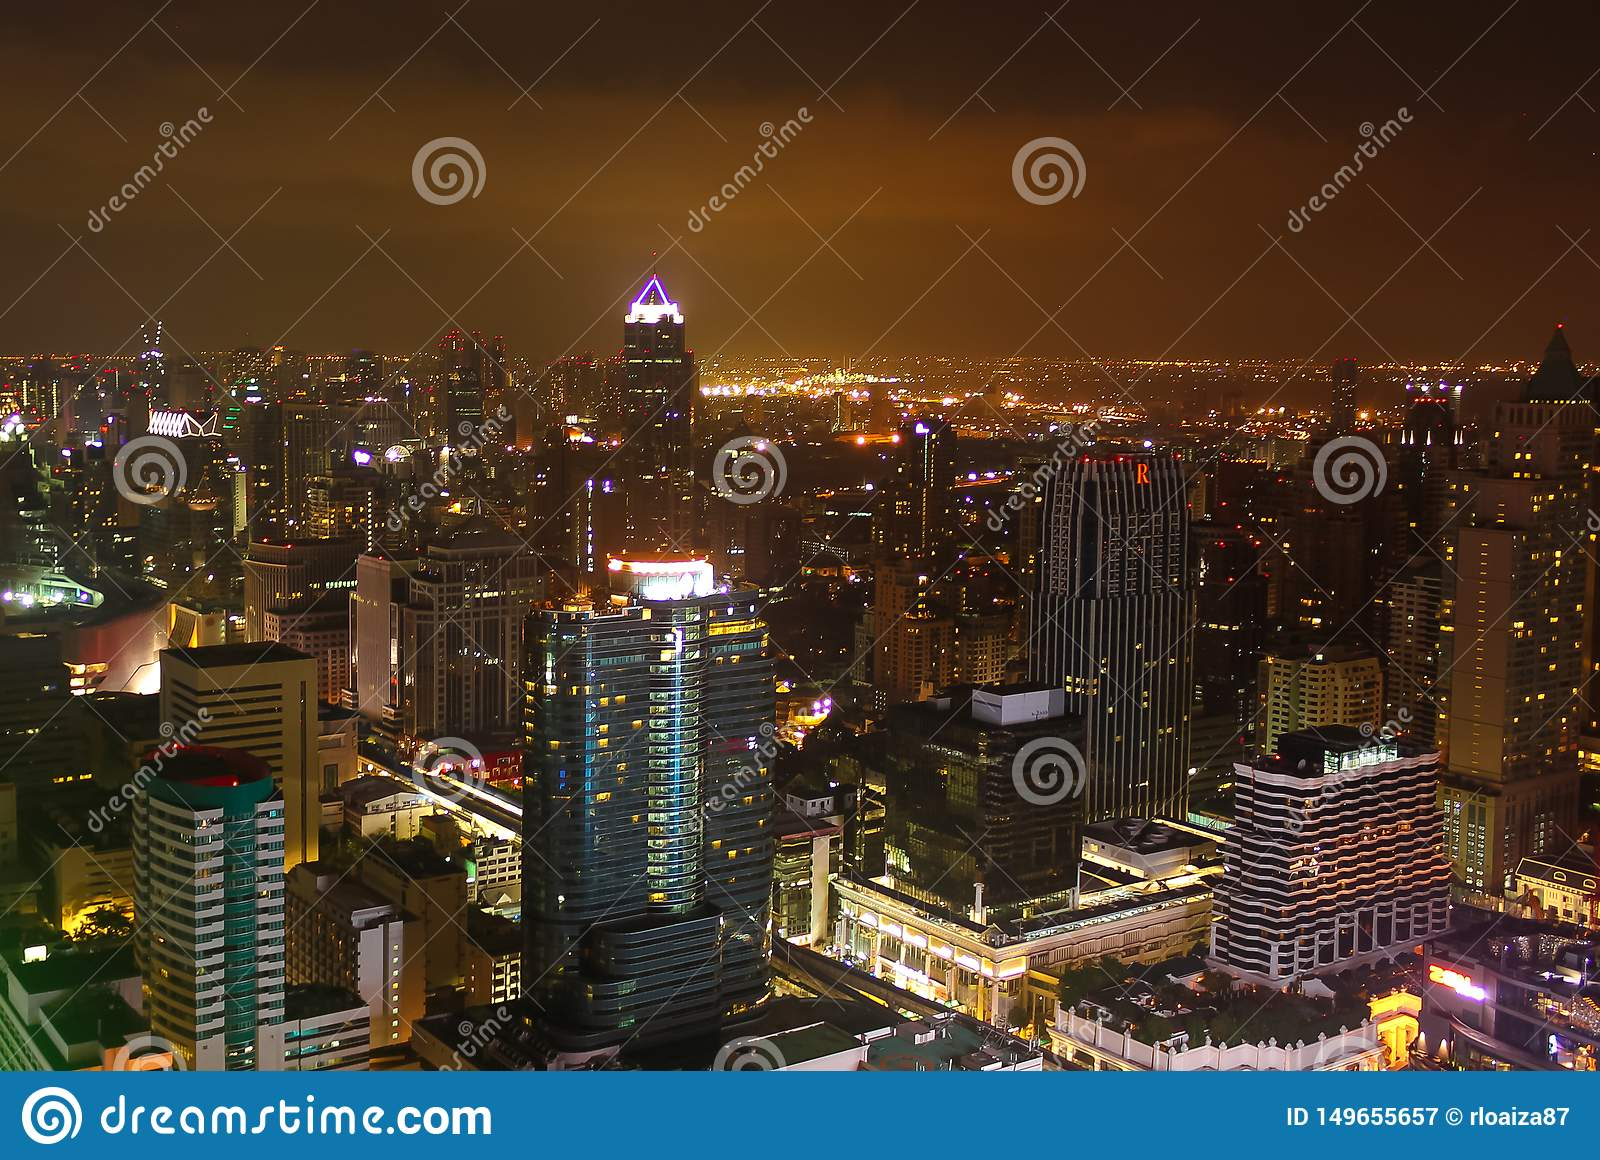 Image showing some buildings and lights of the city of Bangkok at night